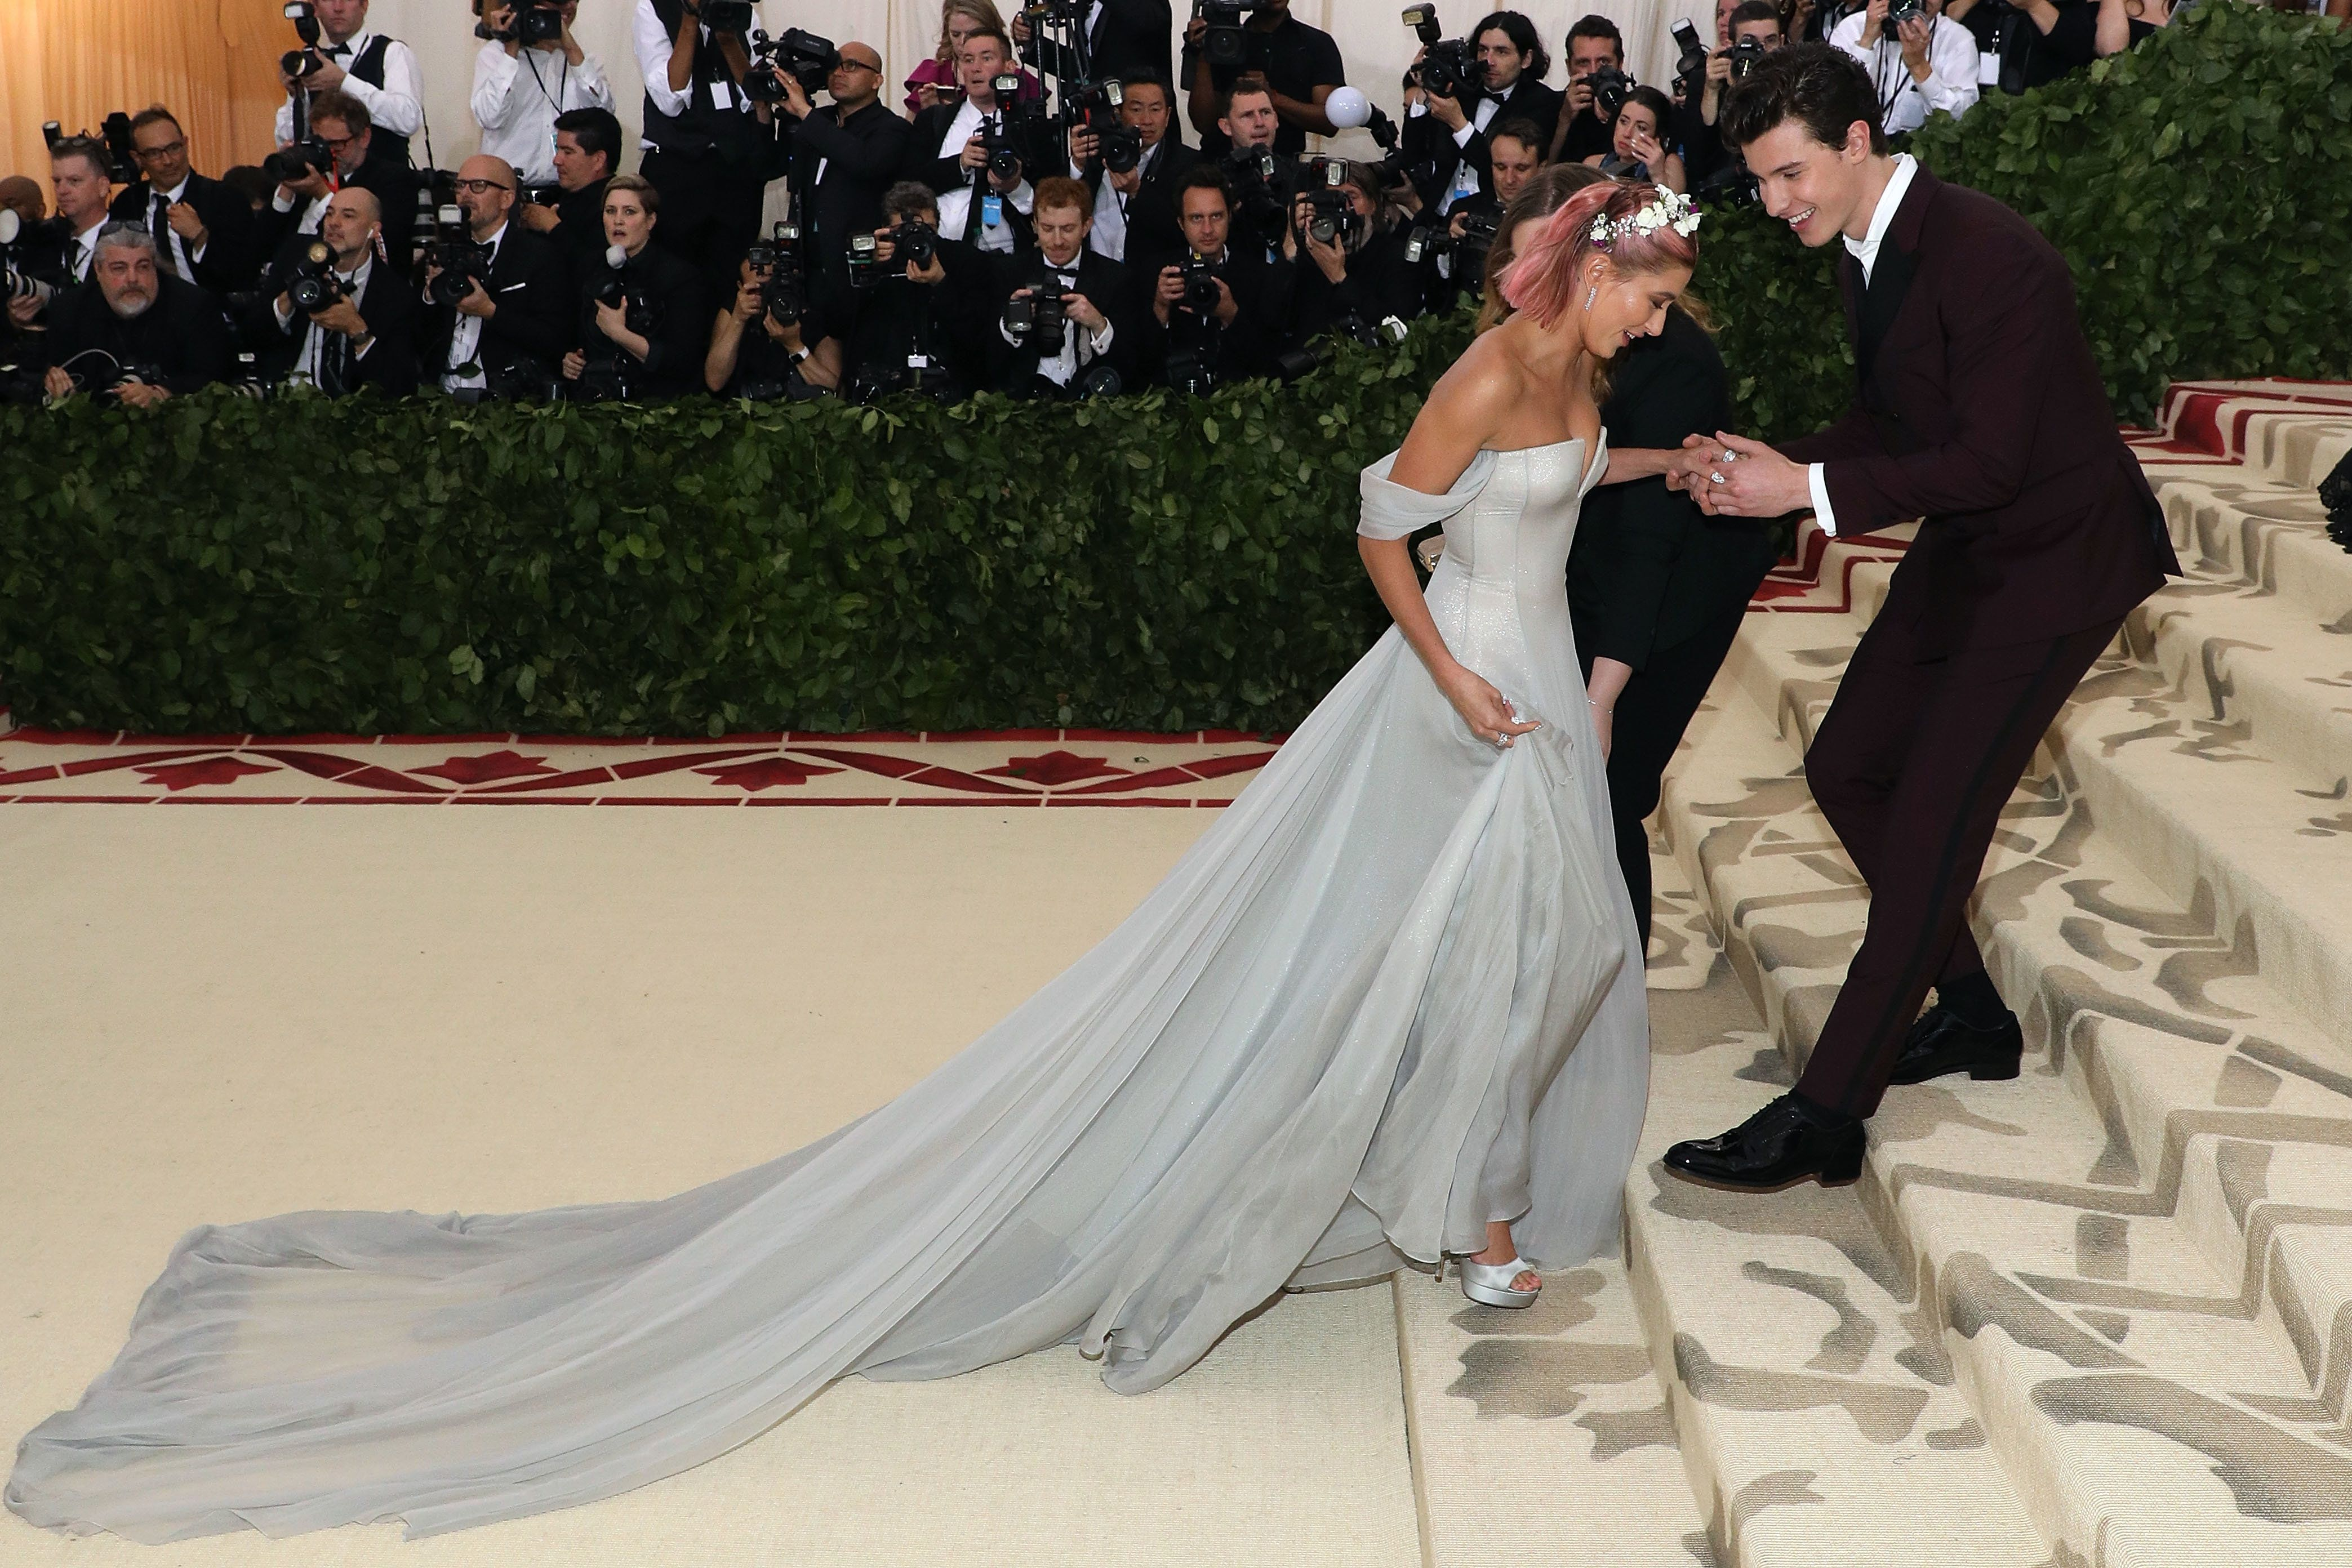 Shawn Mendes Sweetly Attended To Hailey Baldwin S Gown At